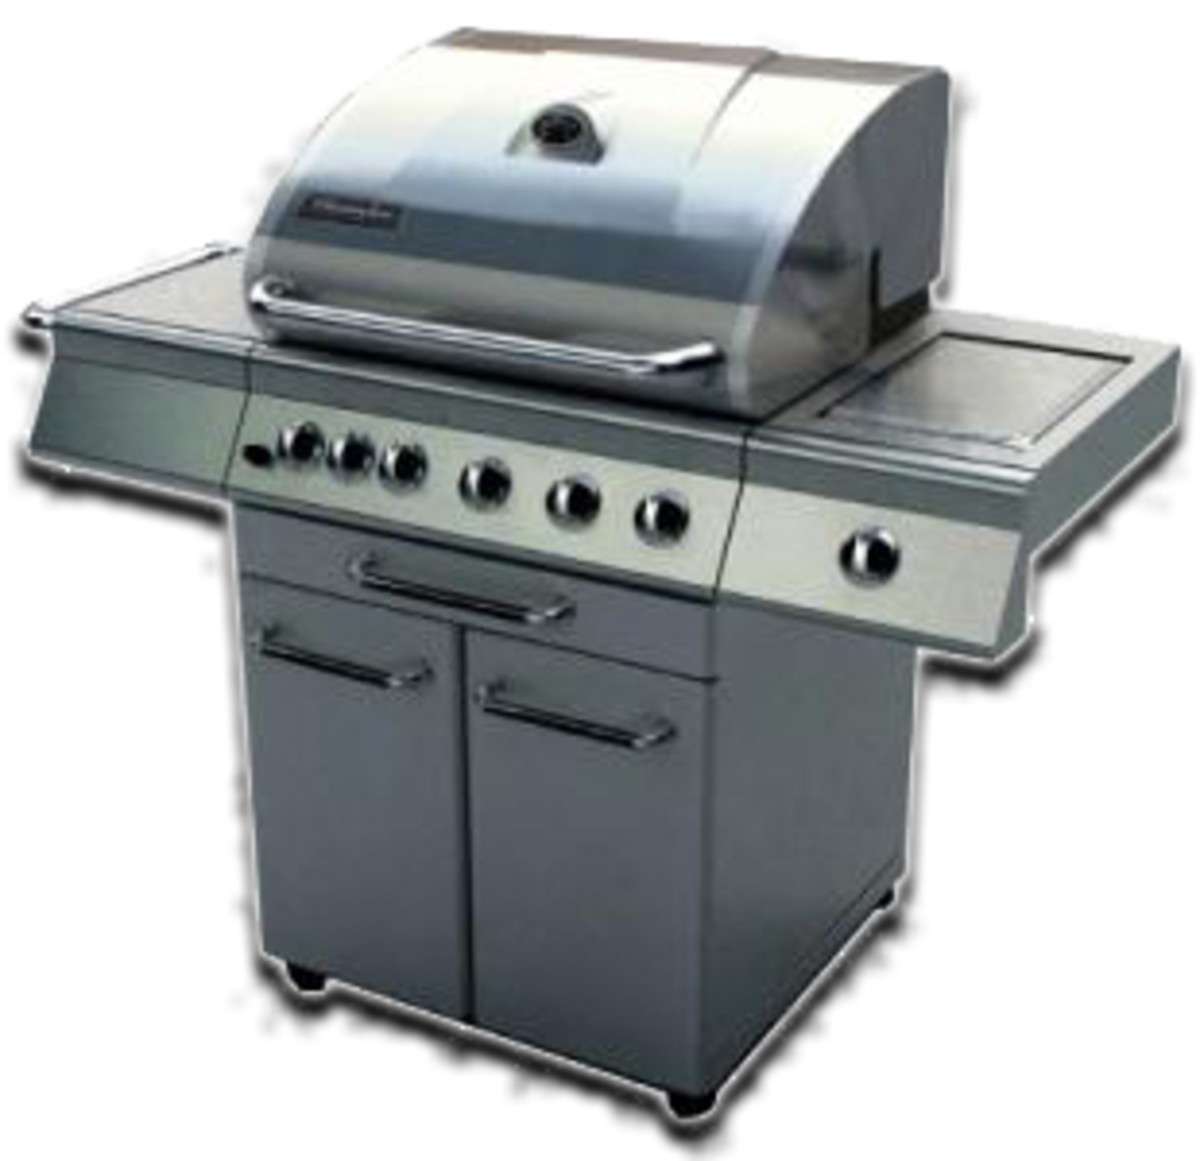 Charmglow gas grills Outdoor Cooking - Compare Prices, Read